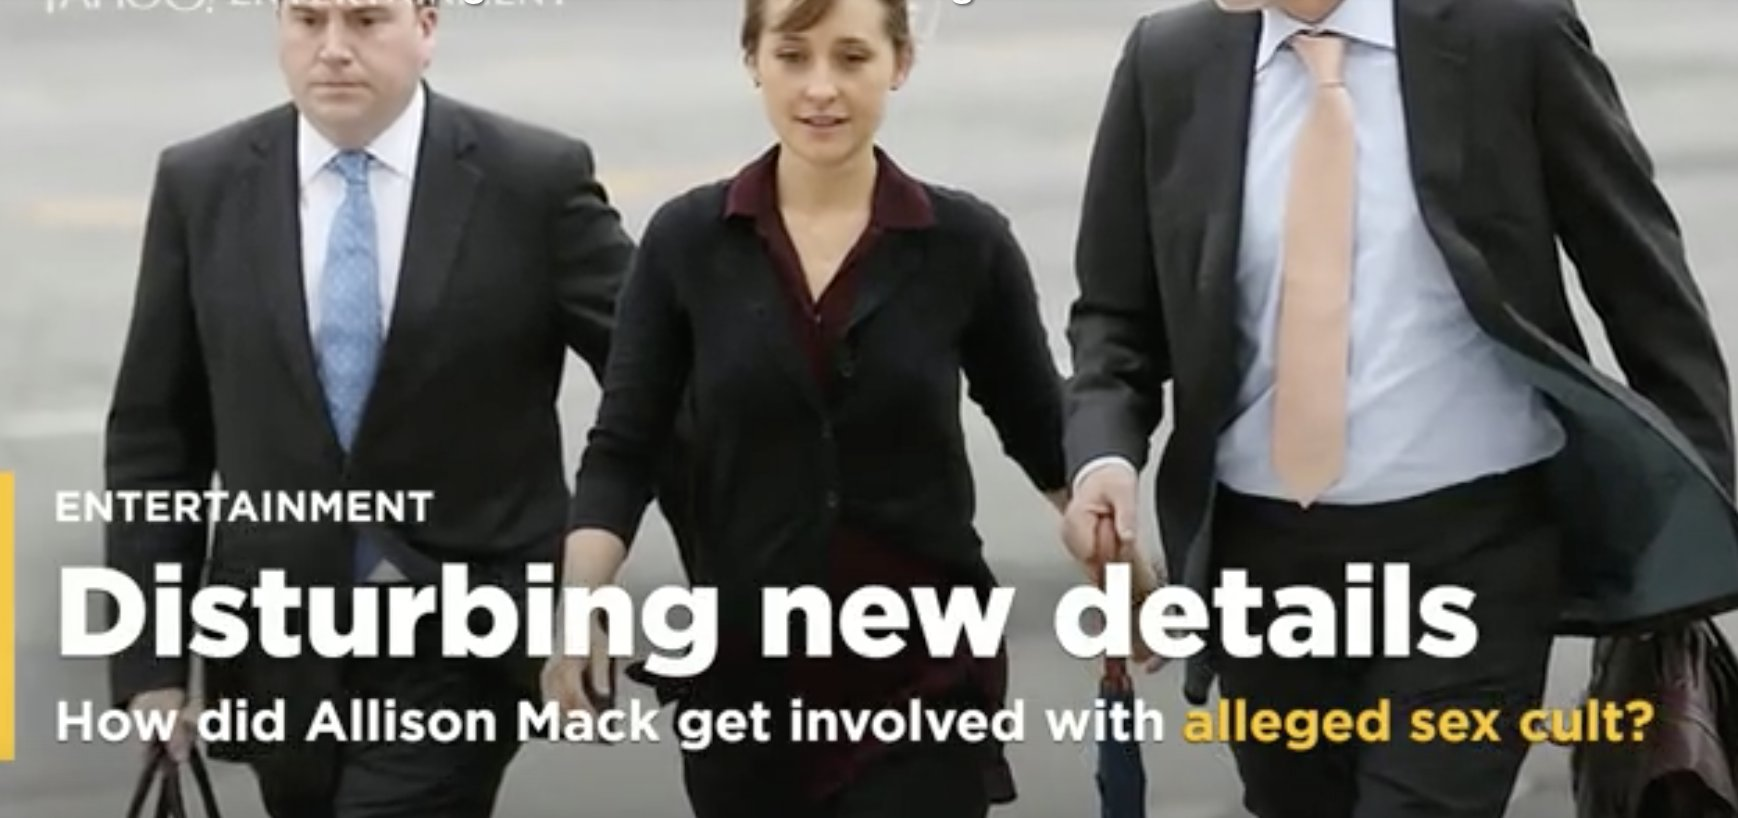 How did Allison Mack get involved with an alleged sex cult in the first place? Disturbing new details emerge